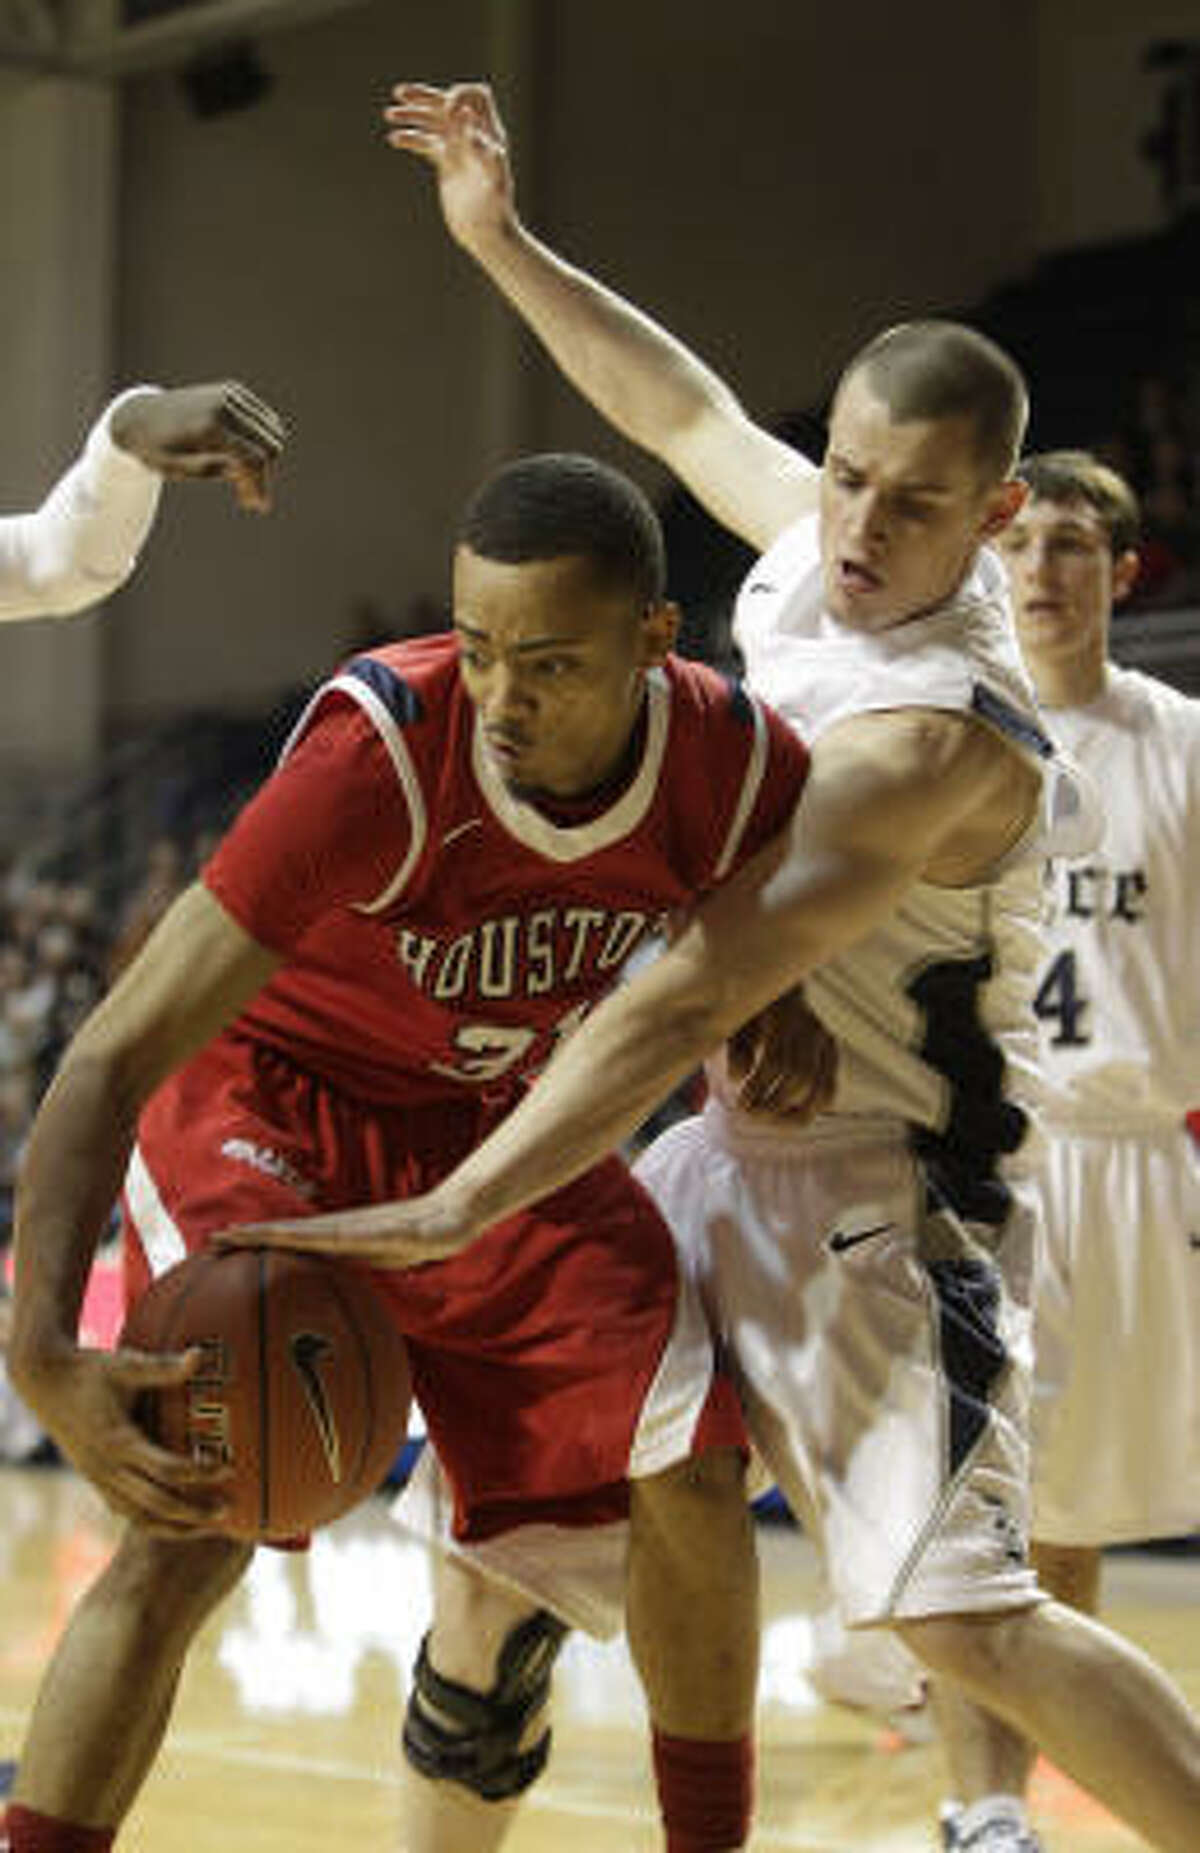 Adam Brown, left, is averaging 13 points and 2.9 assists per game in 26 games this season.